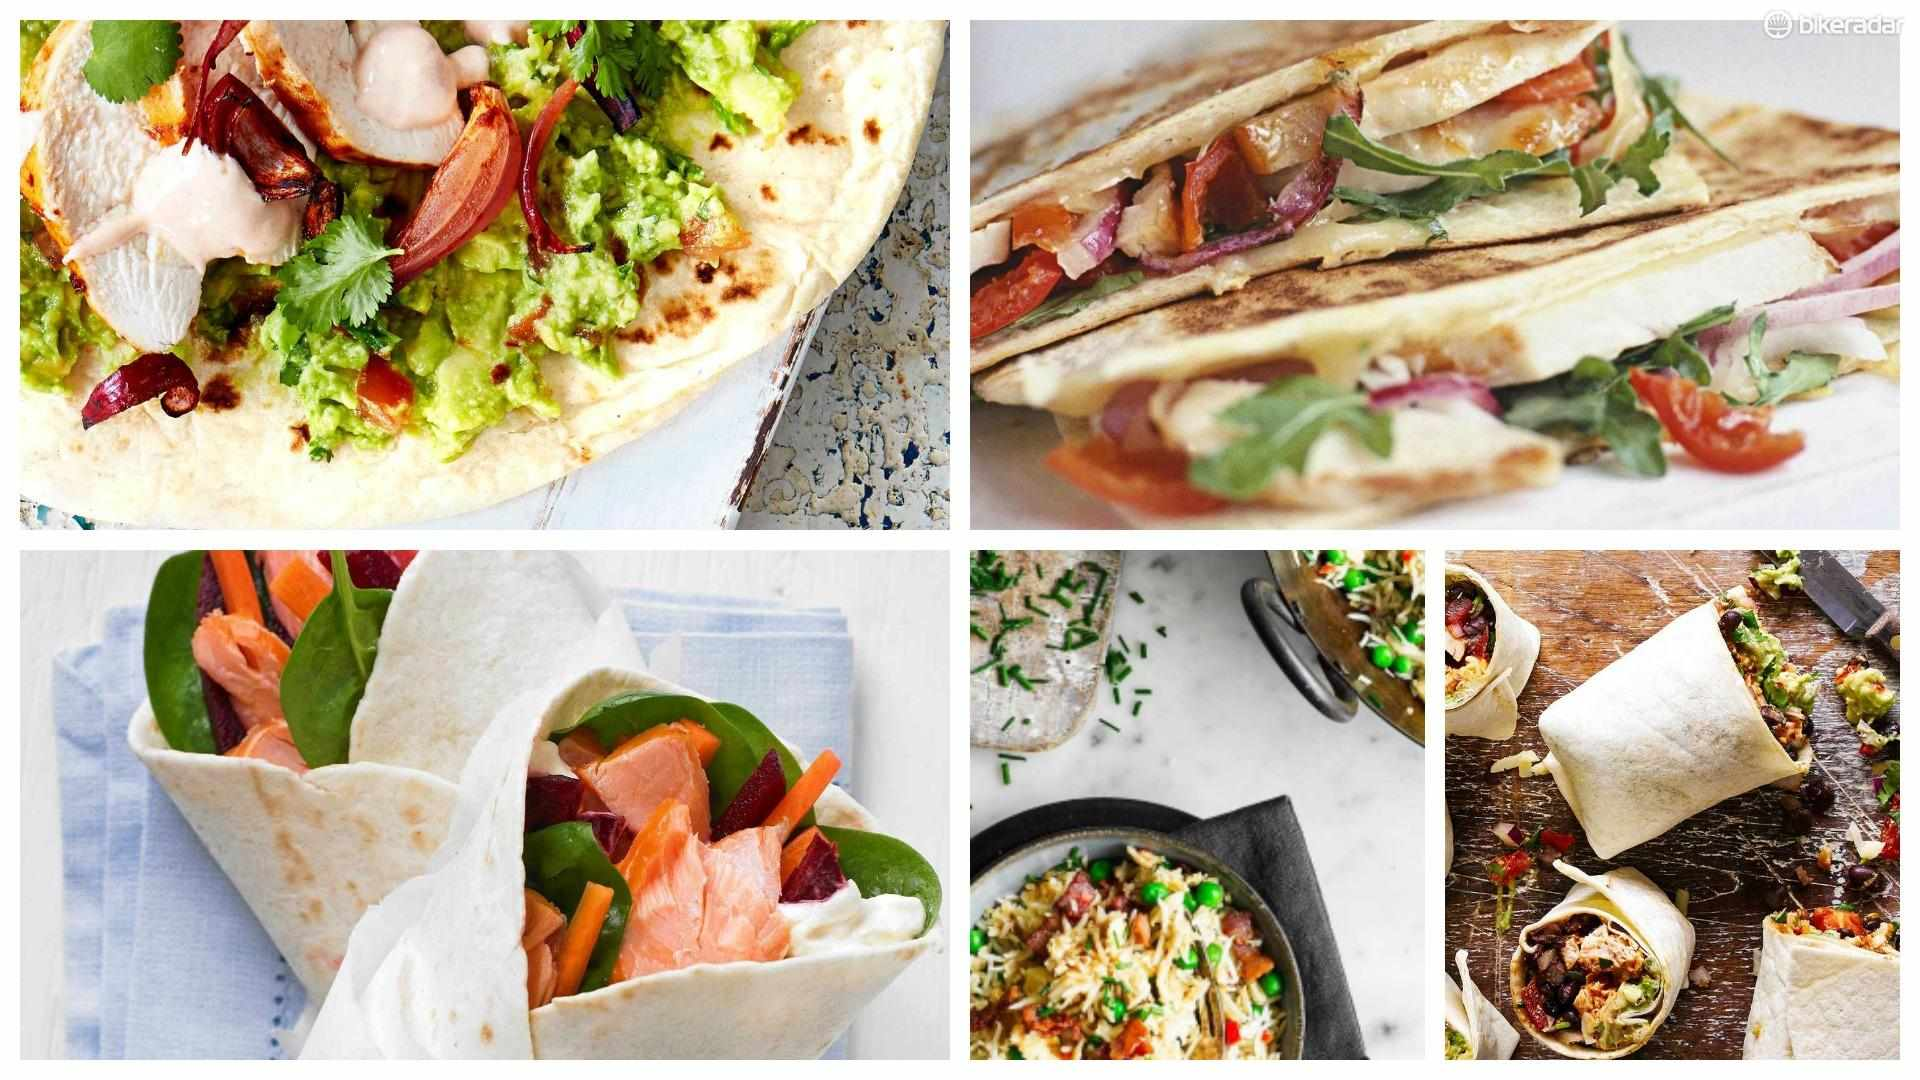 Delicious lunchtime dishes